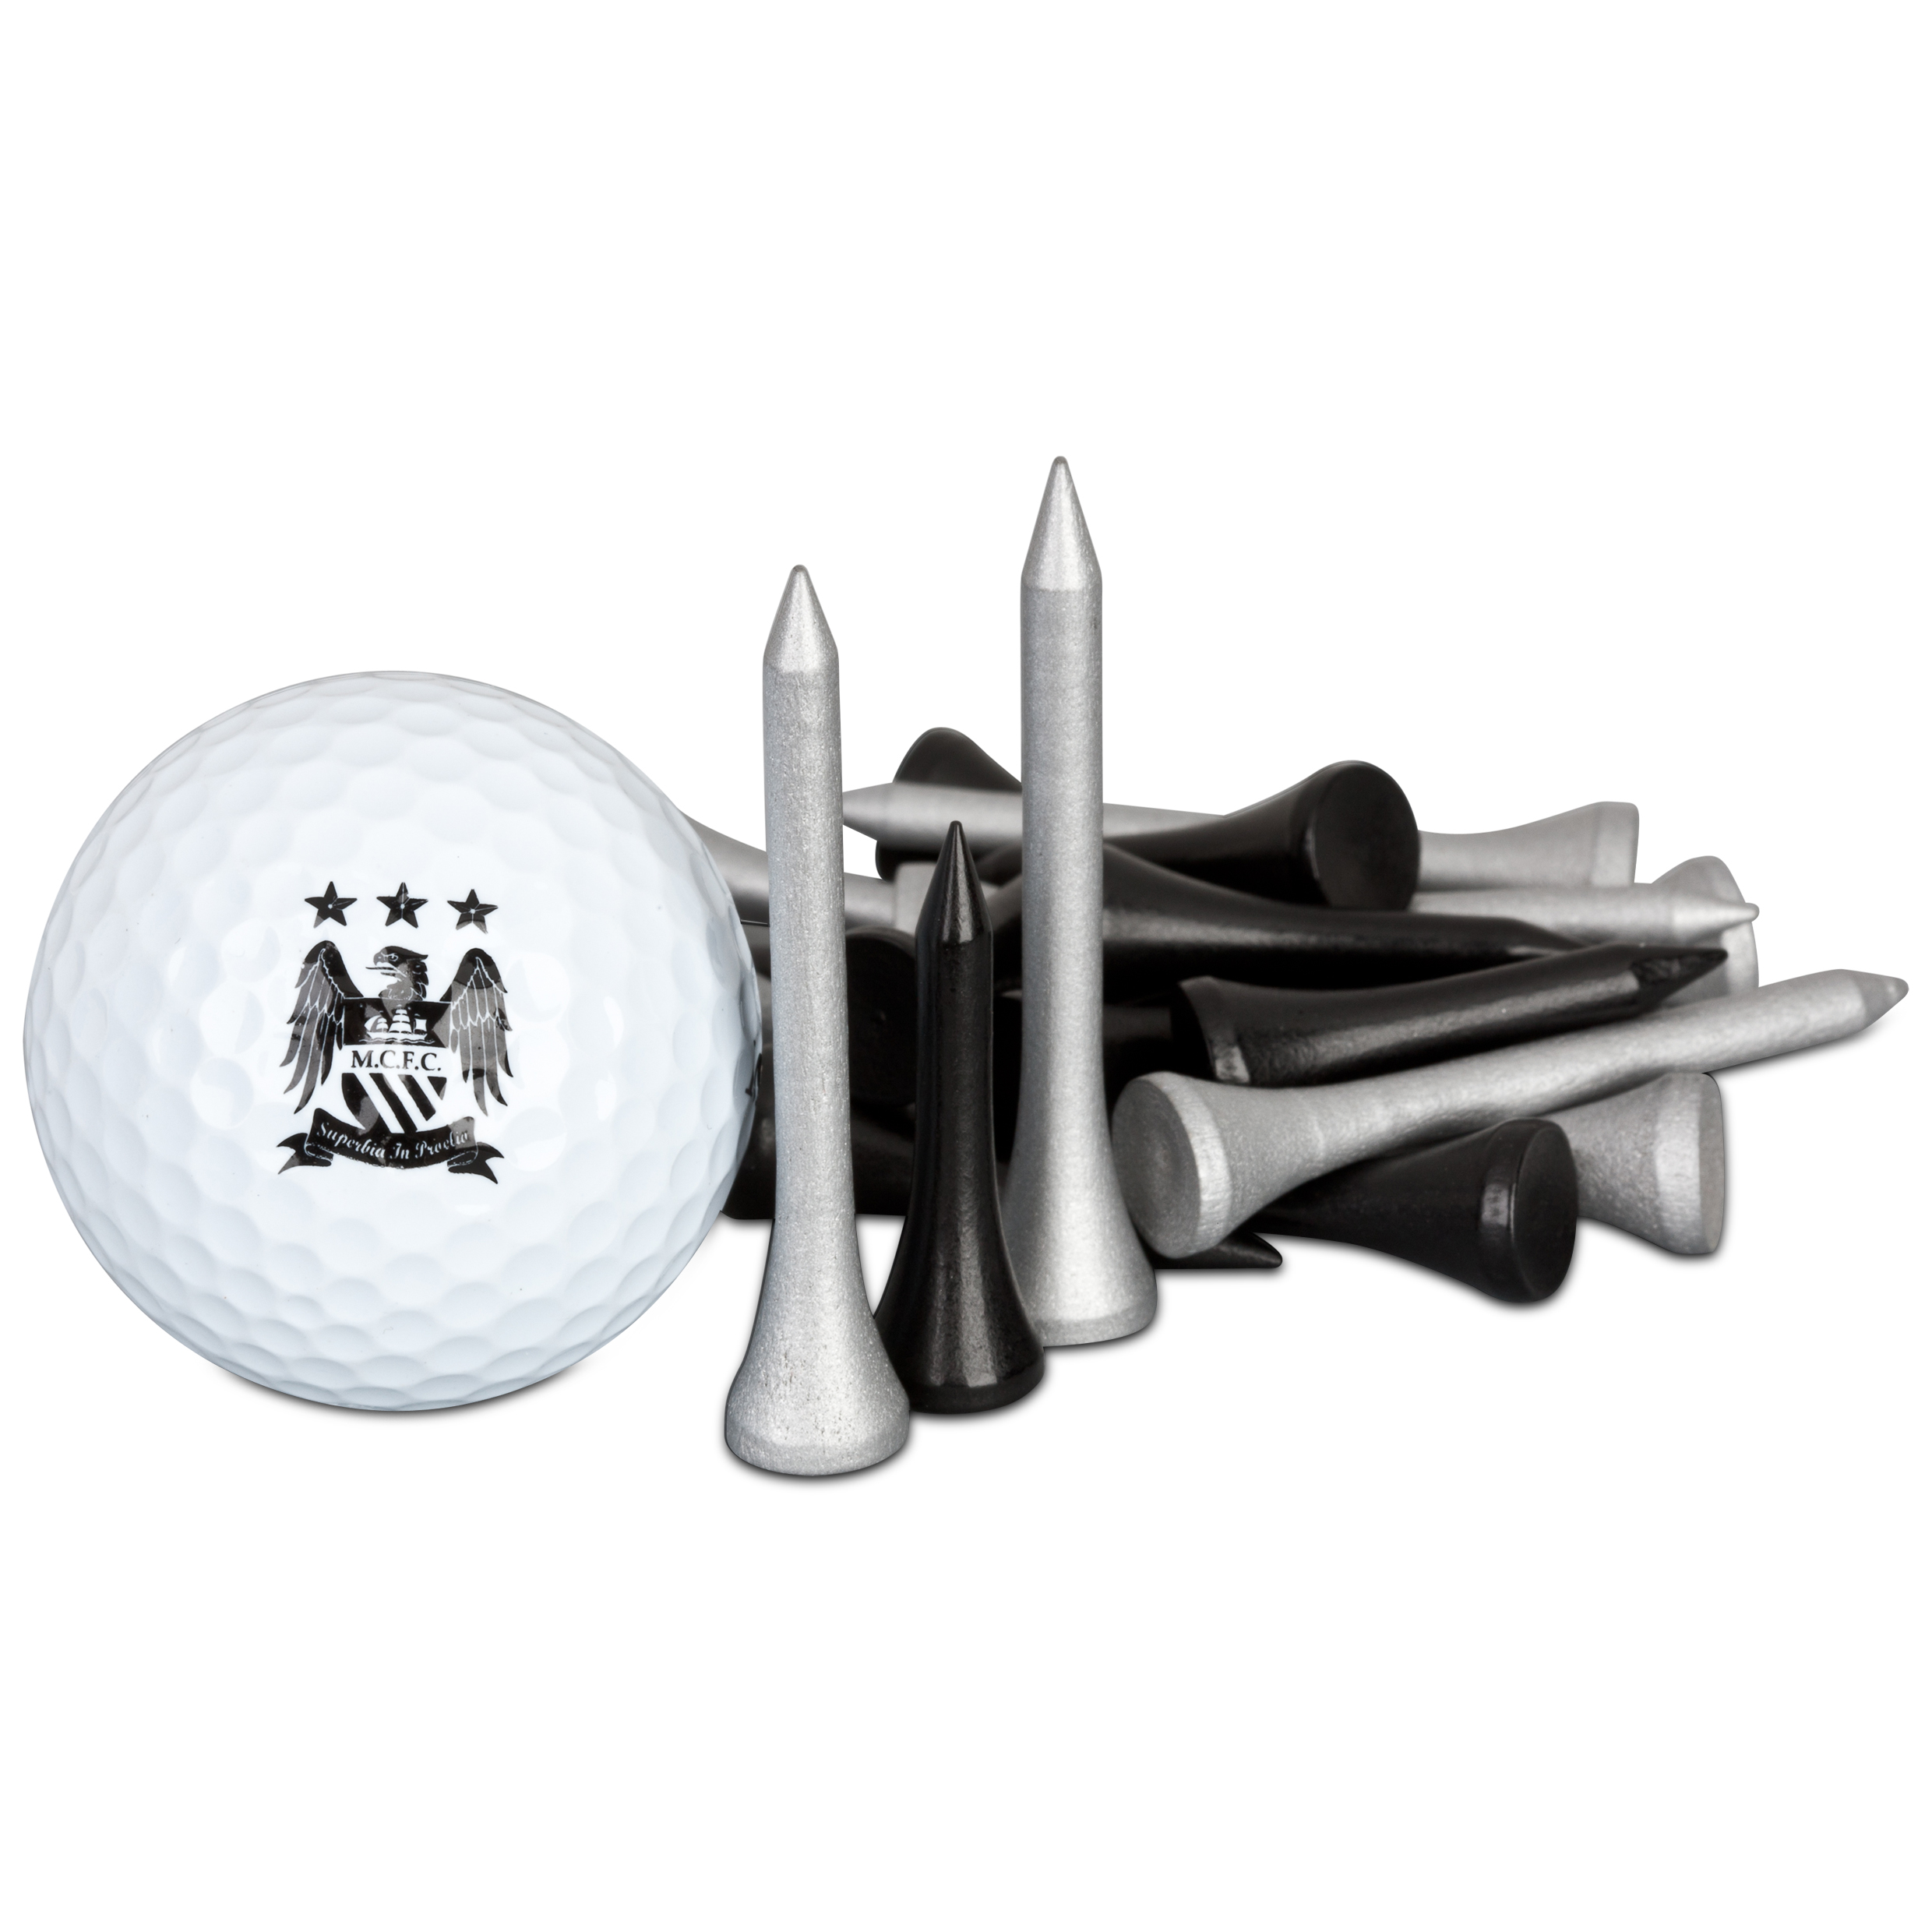 Manchester City Executive Golf Gift Ball and Tee Set